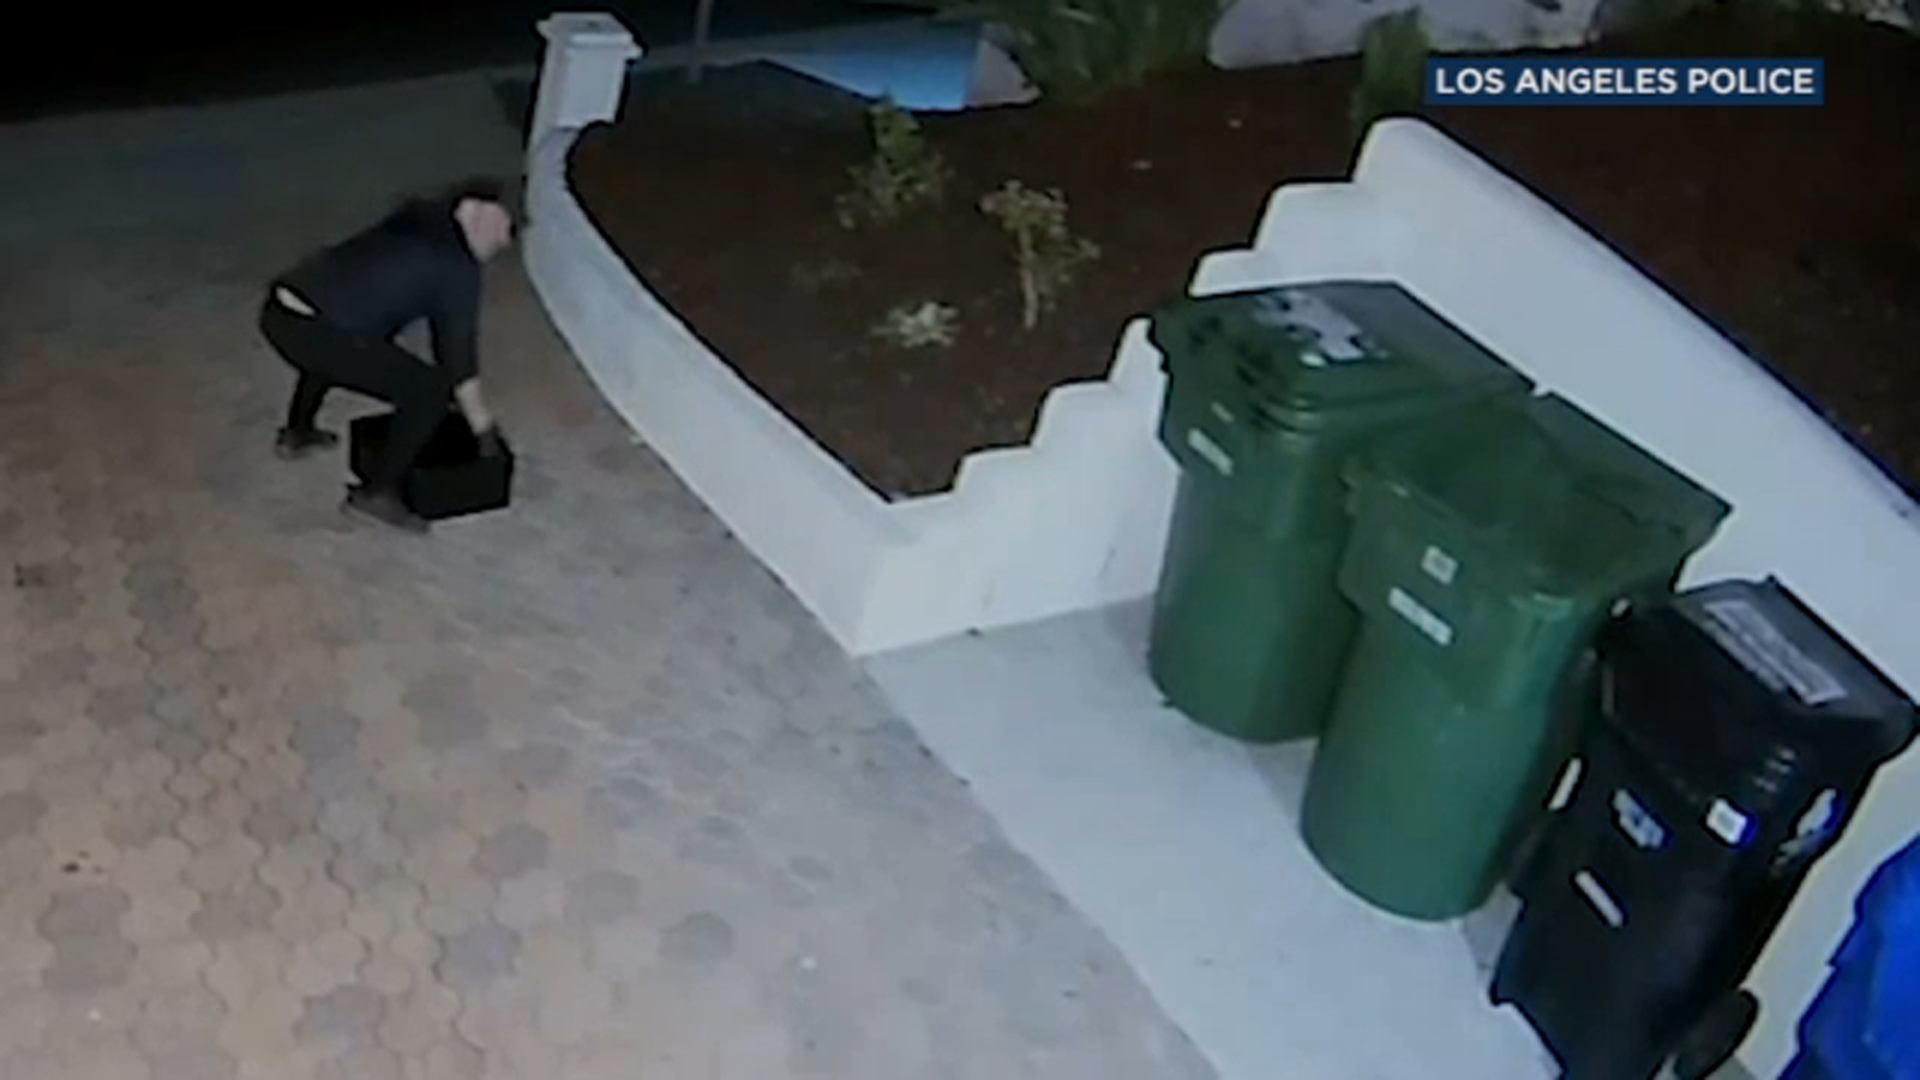 A man is caught on camera burglarizing a home in Encino on Dec. 23, 2019.